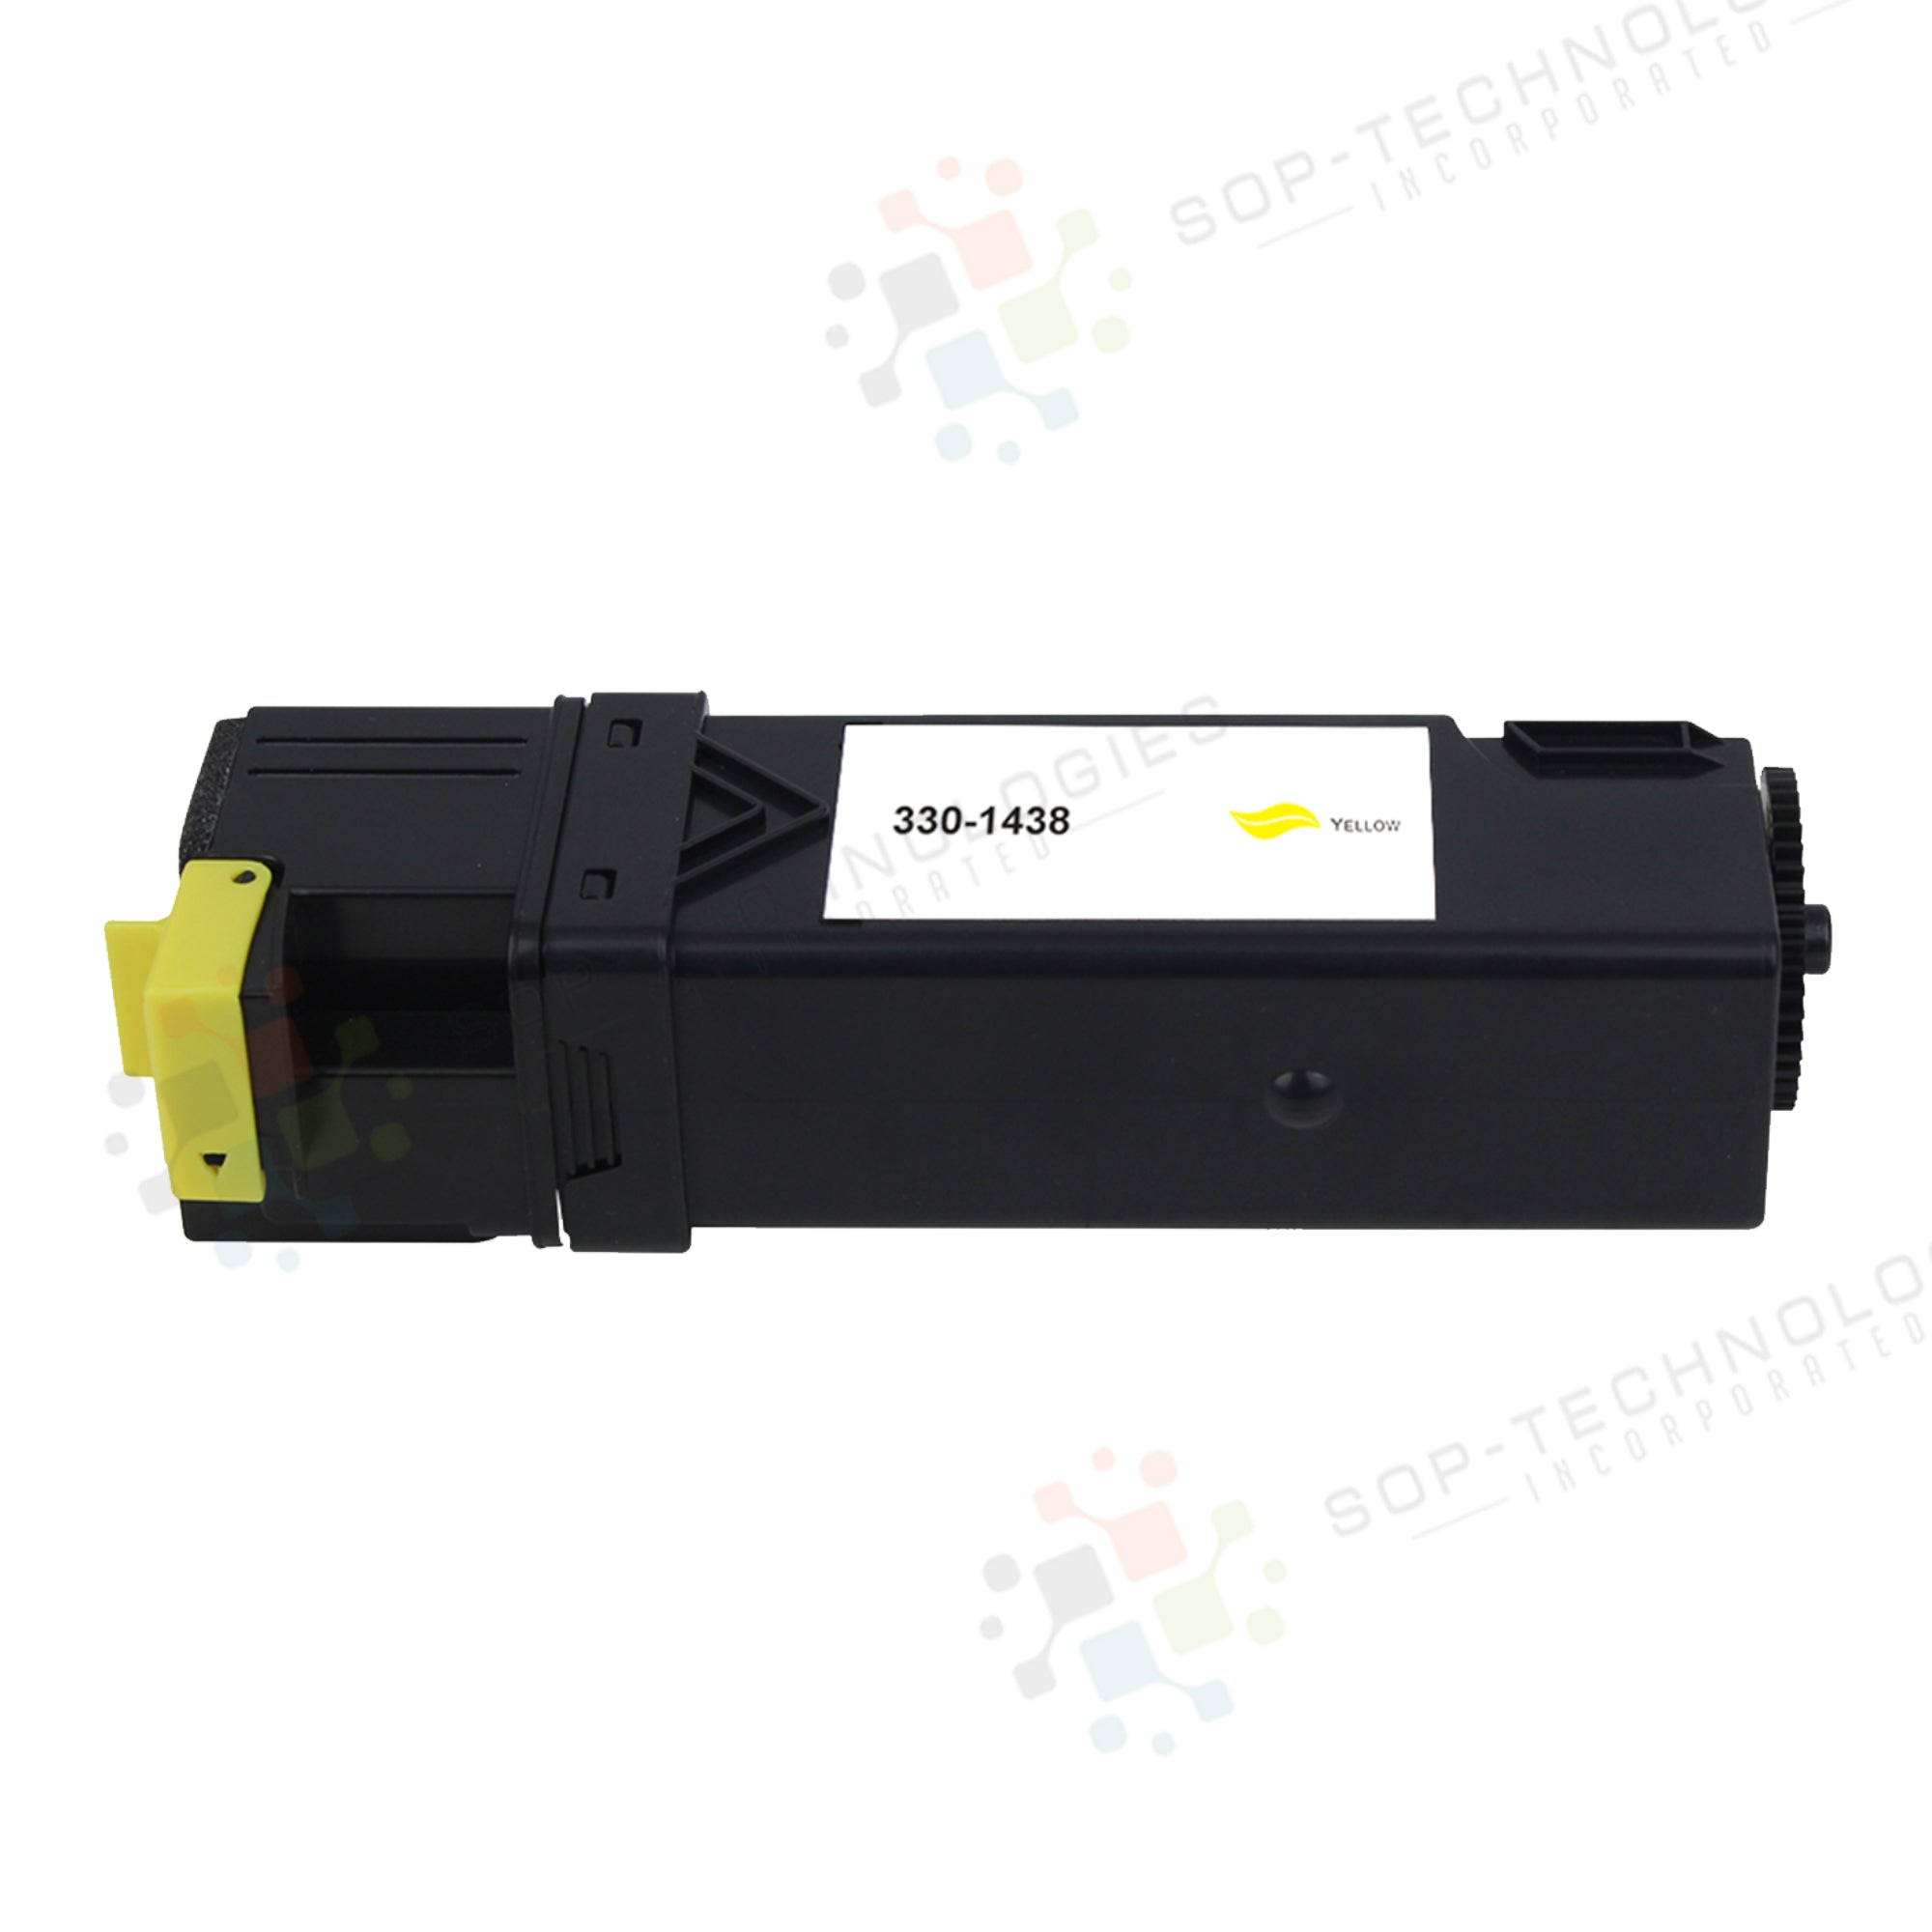 4 Pack Compatible Toner Cartridge Replacement for Dell 1320 - SOP-TECHNOLOGIES, INC.